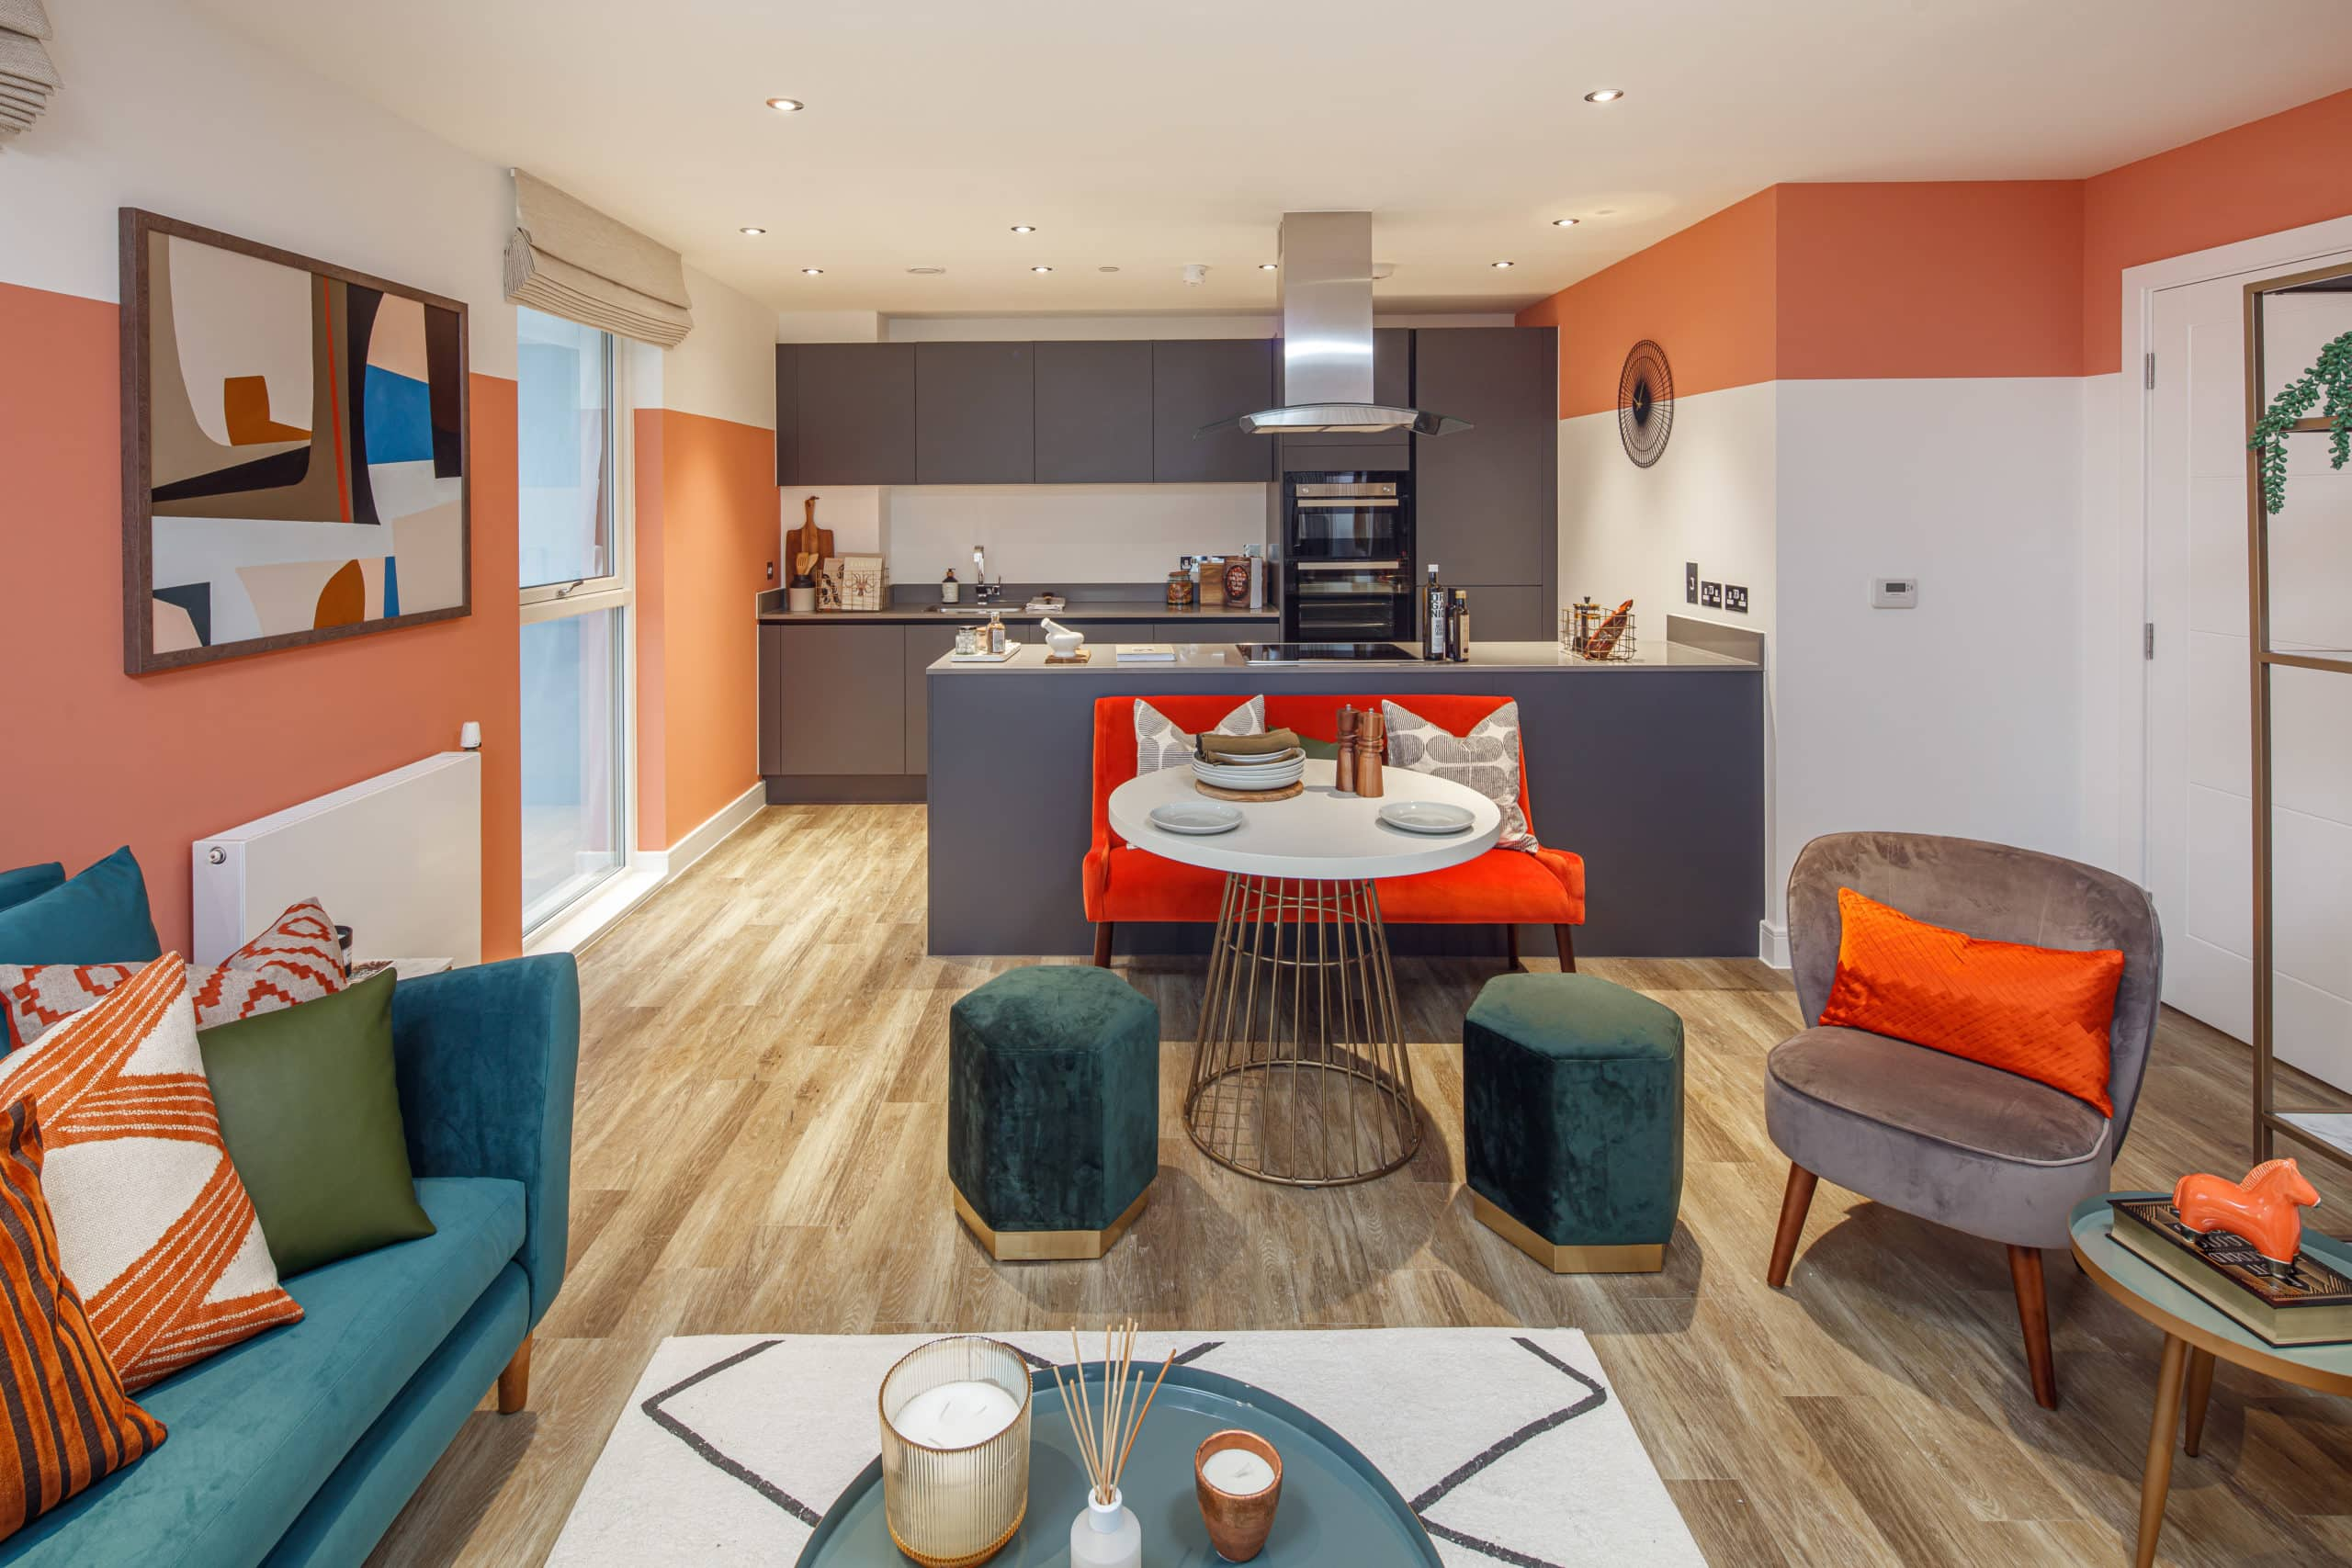 Kitchen at The Chain by L&Q - Shared Ownership & Help to Buy available on Share to Buy